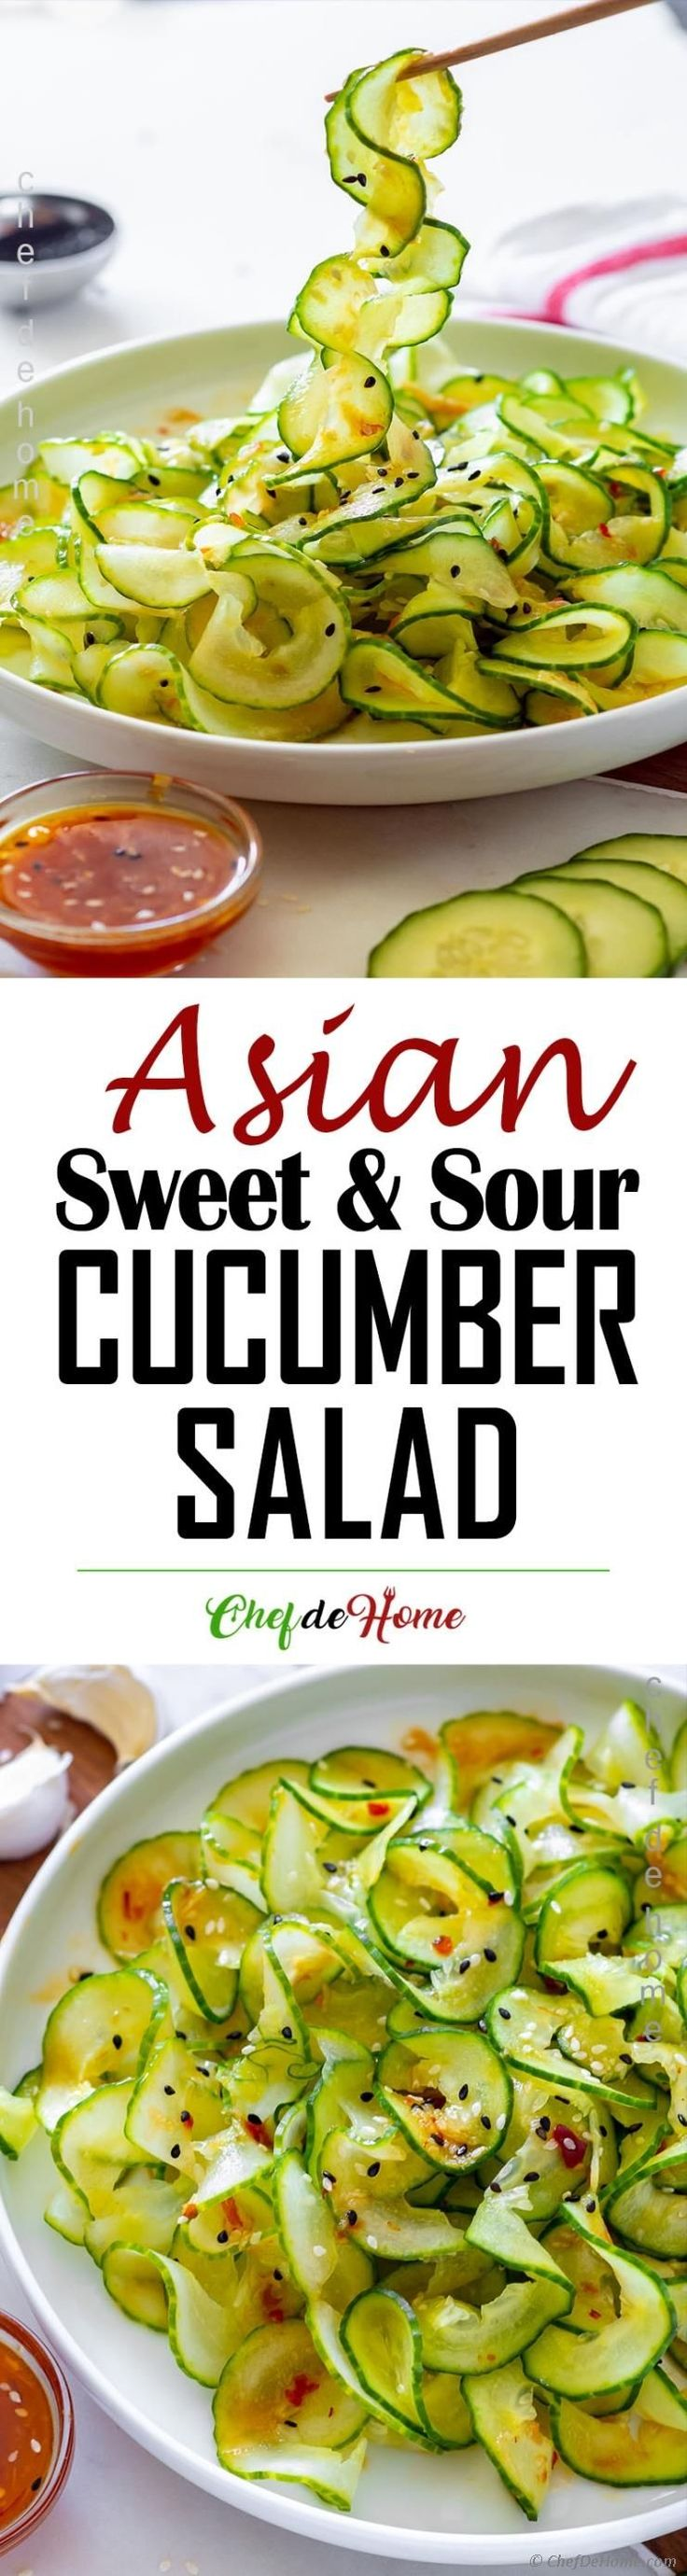 Asian Cucumber Salad If you love Cucumber and Asia…